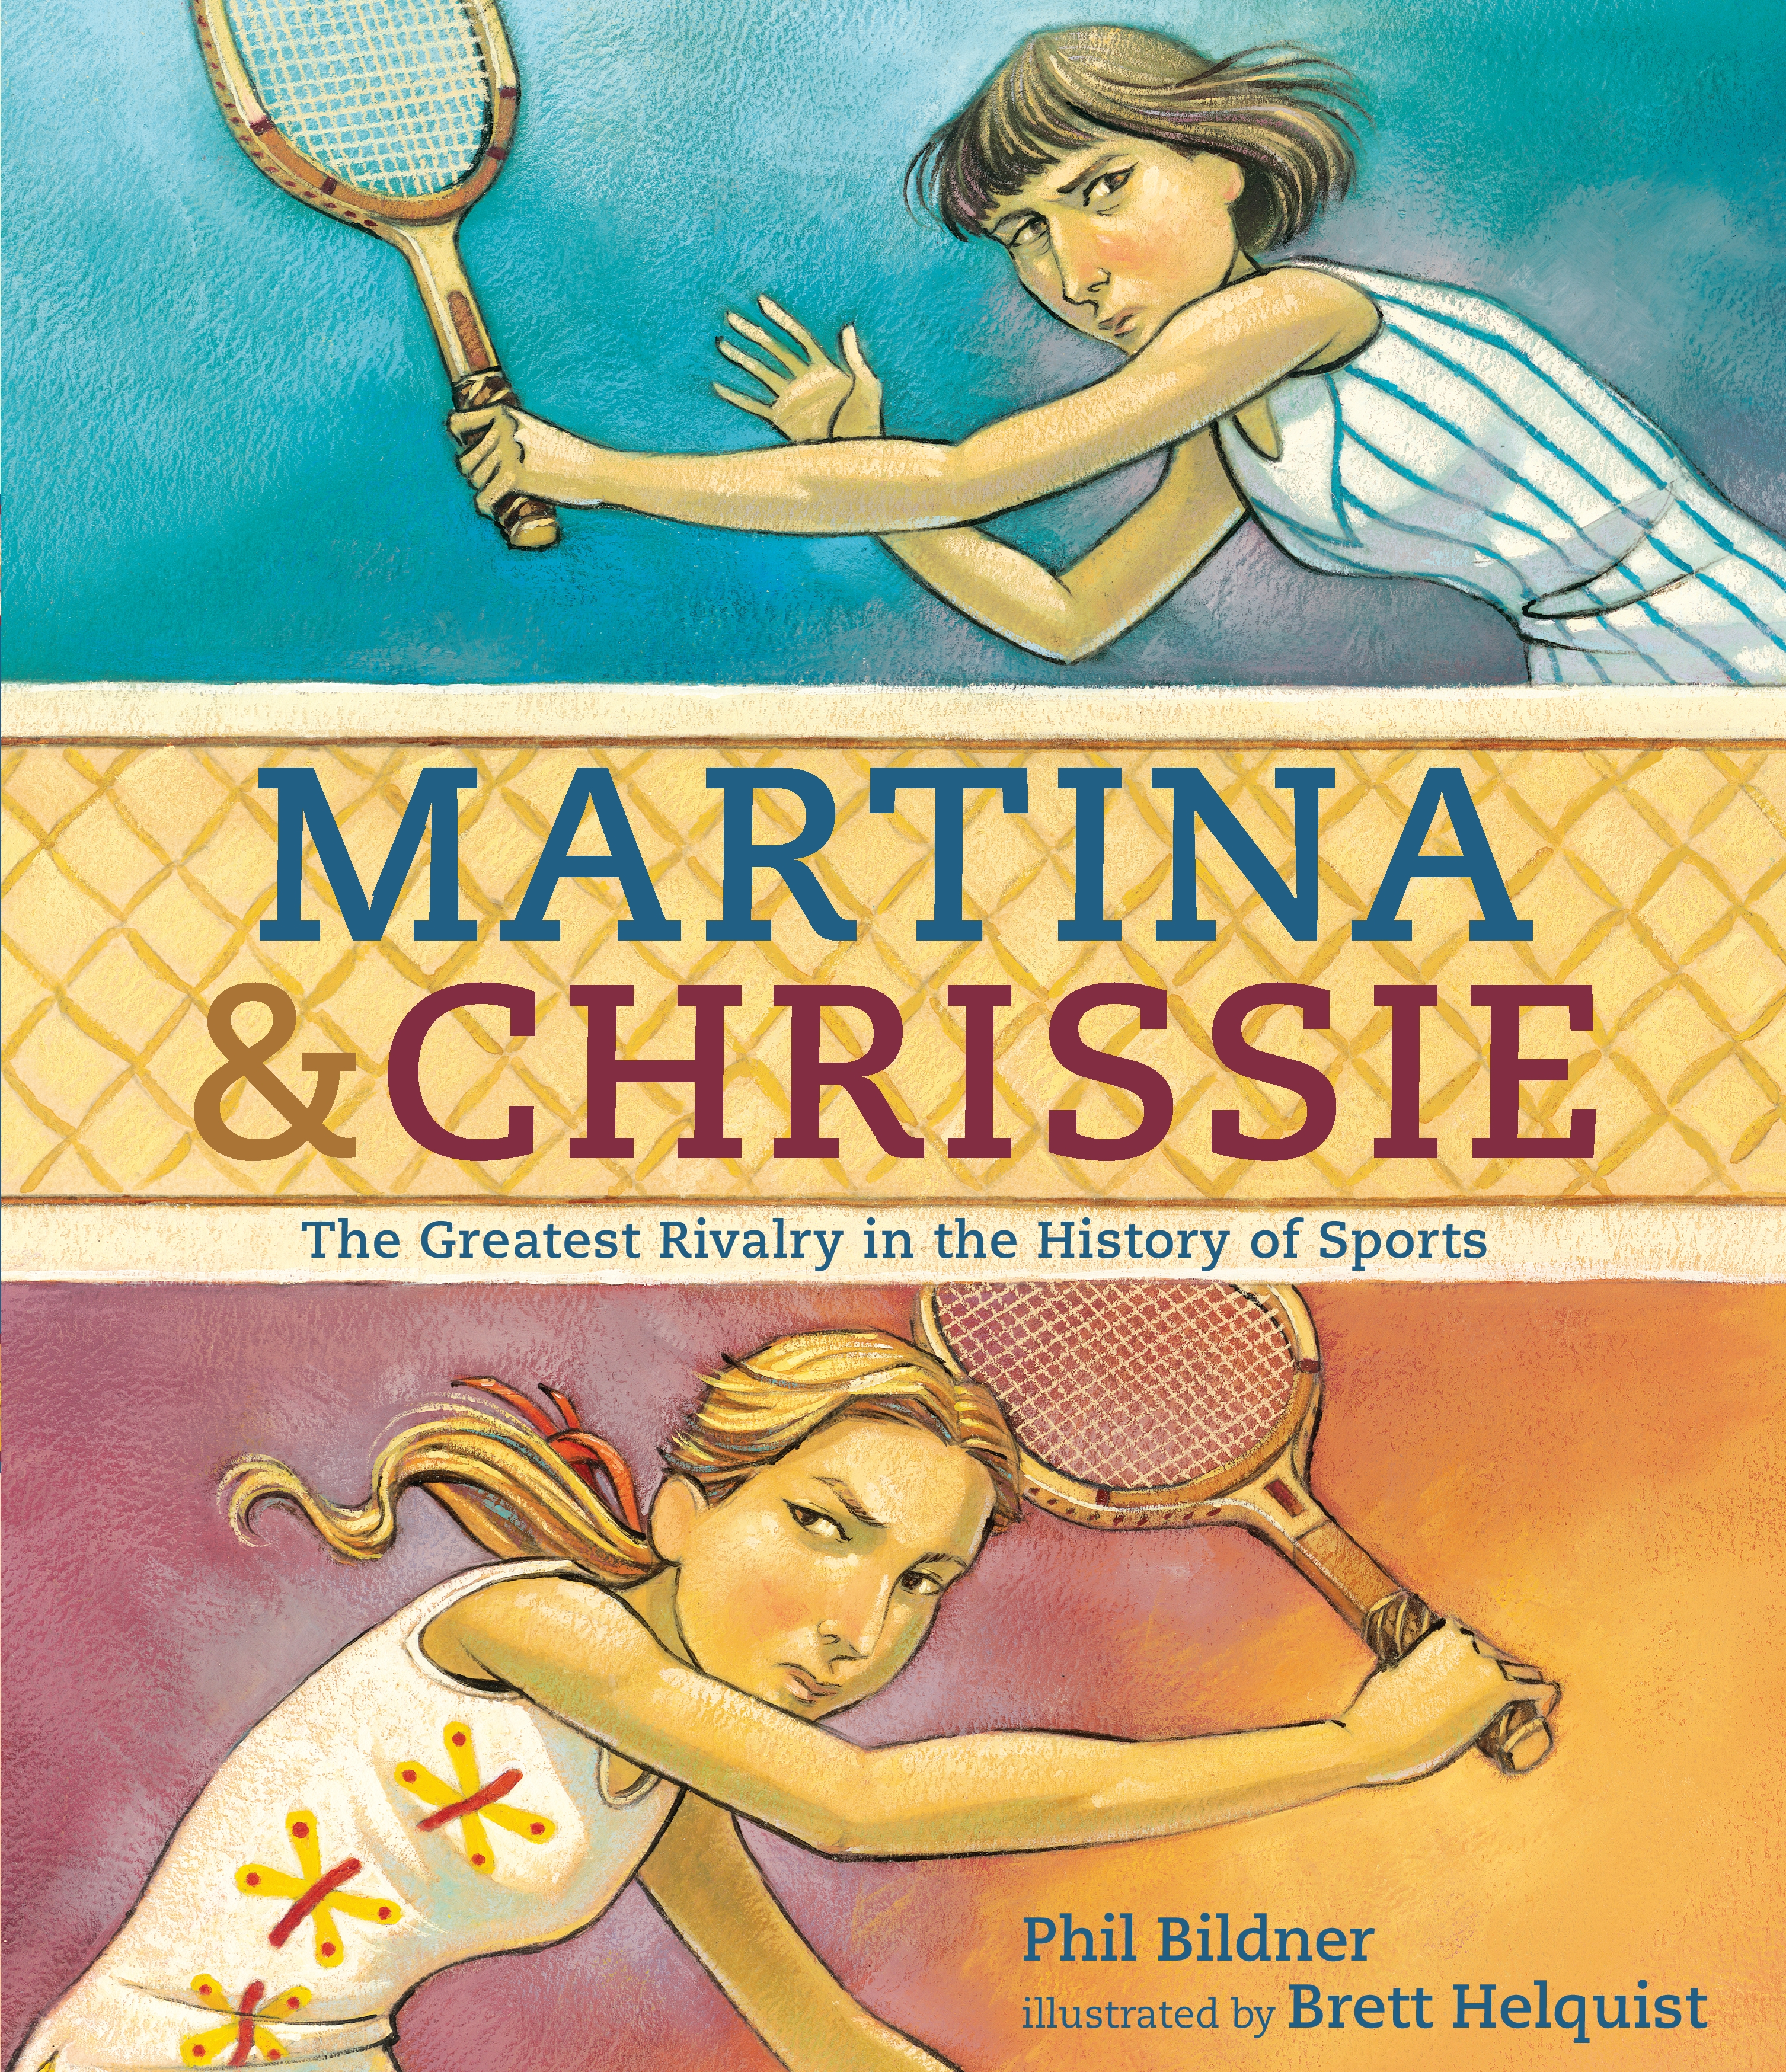 Sunday Story Time with Brett Helquist (Illustrator of Martina & Chrissie: The Greatest Rivalry in the History of Sports)